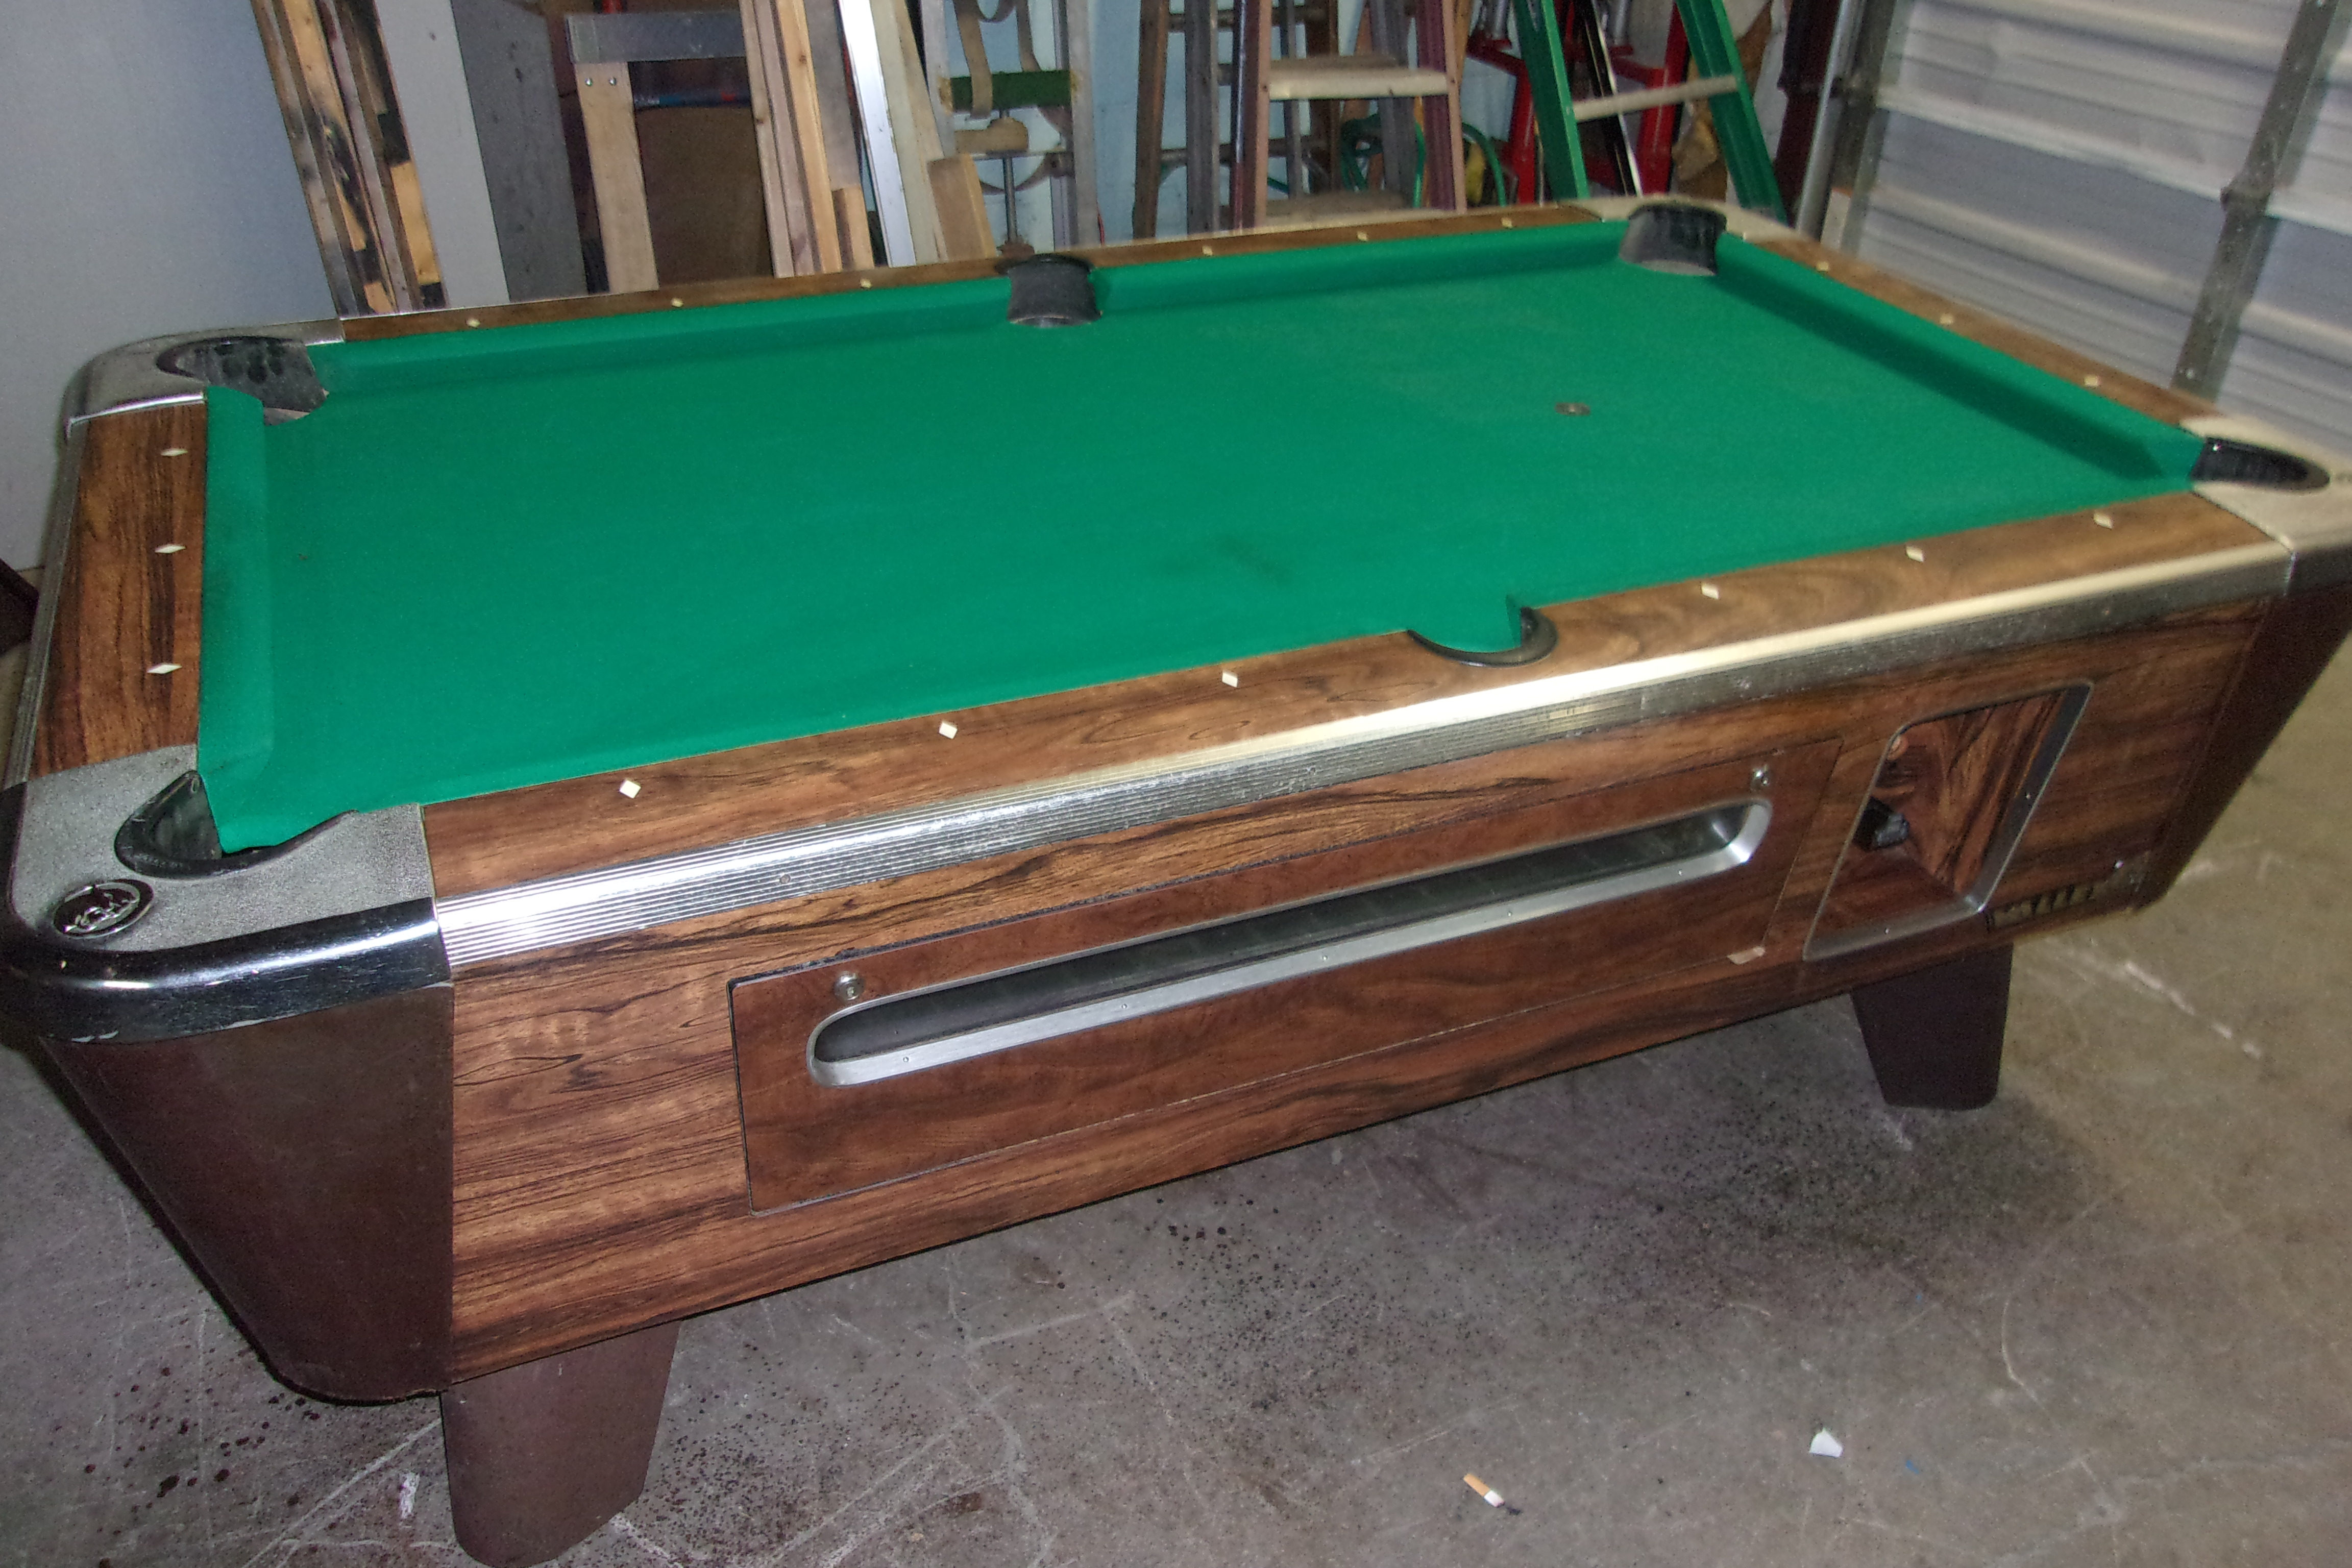 Valley Ft Coin Op Pool Table RARE PT Thomas Games - Pool table description